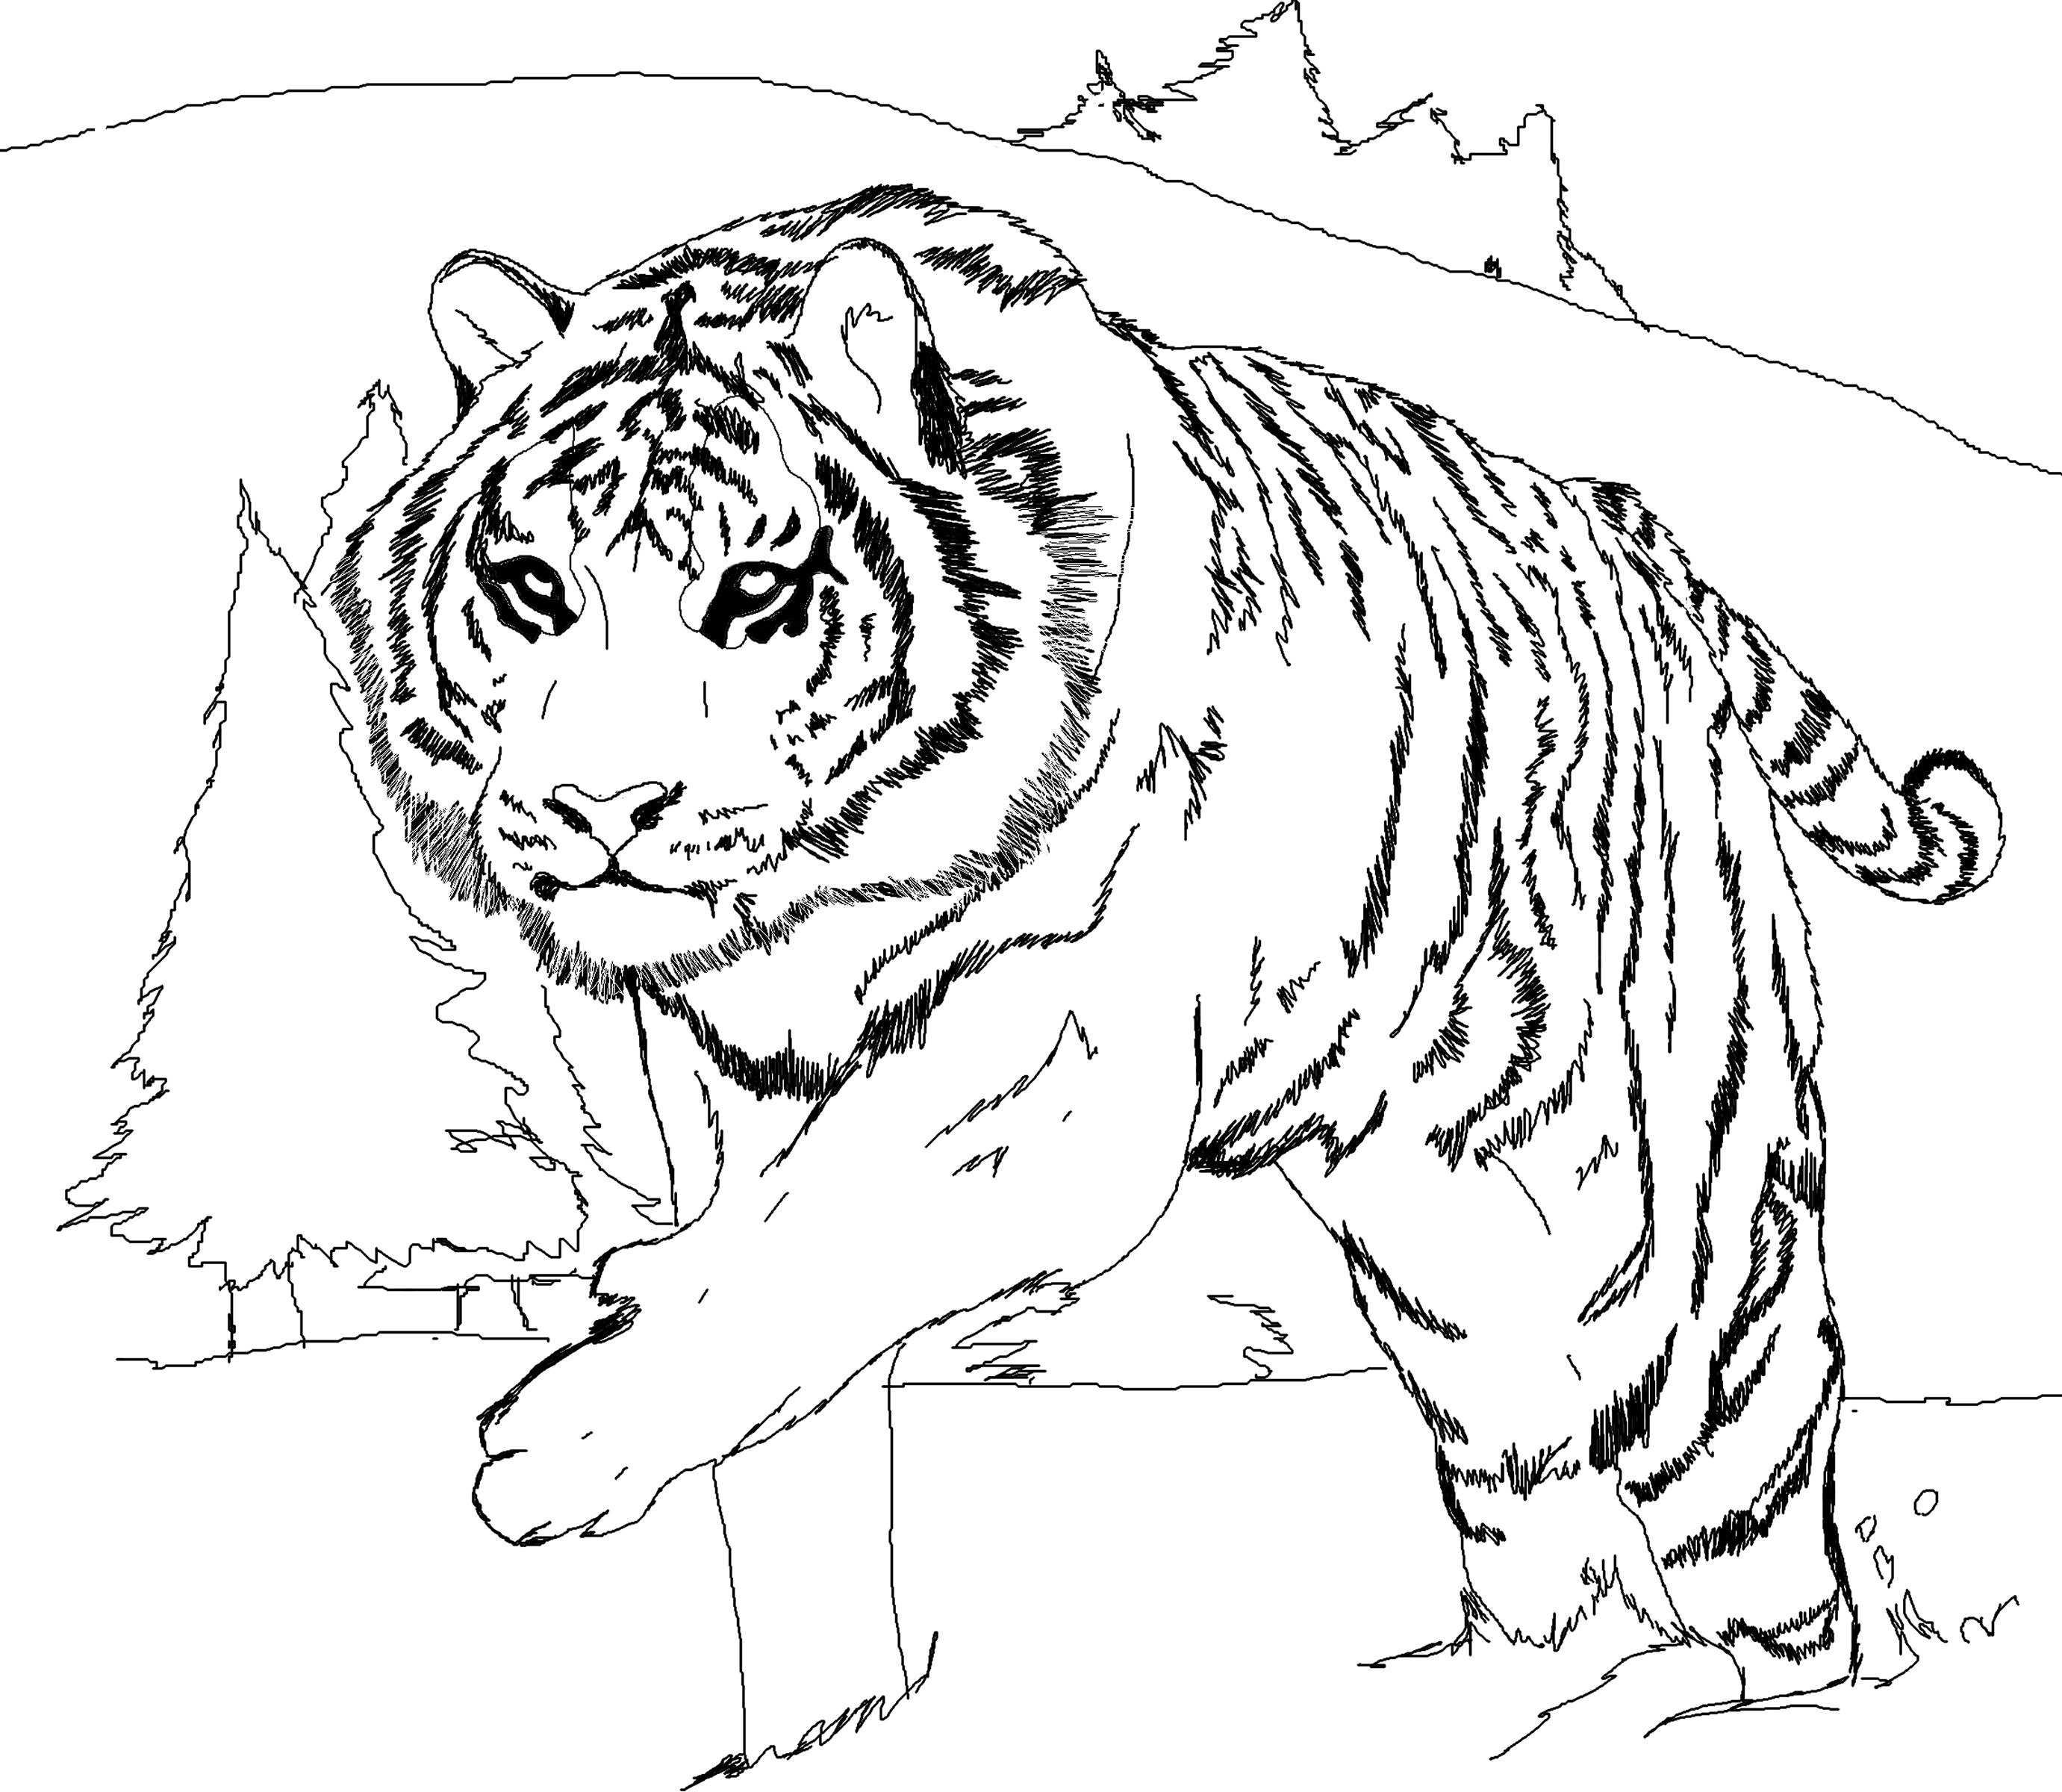 tiger images for colouring tiger line drawing at getdrawings free download tiger colouring images for